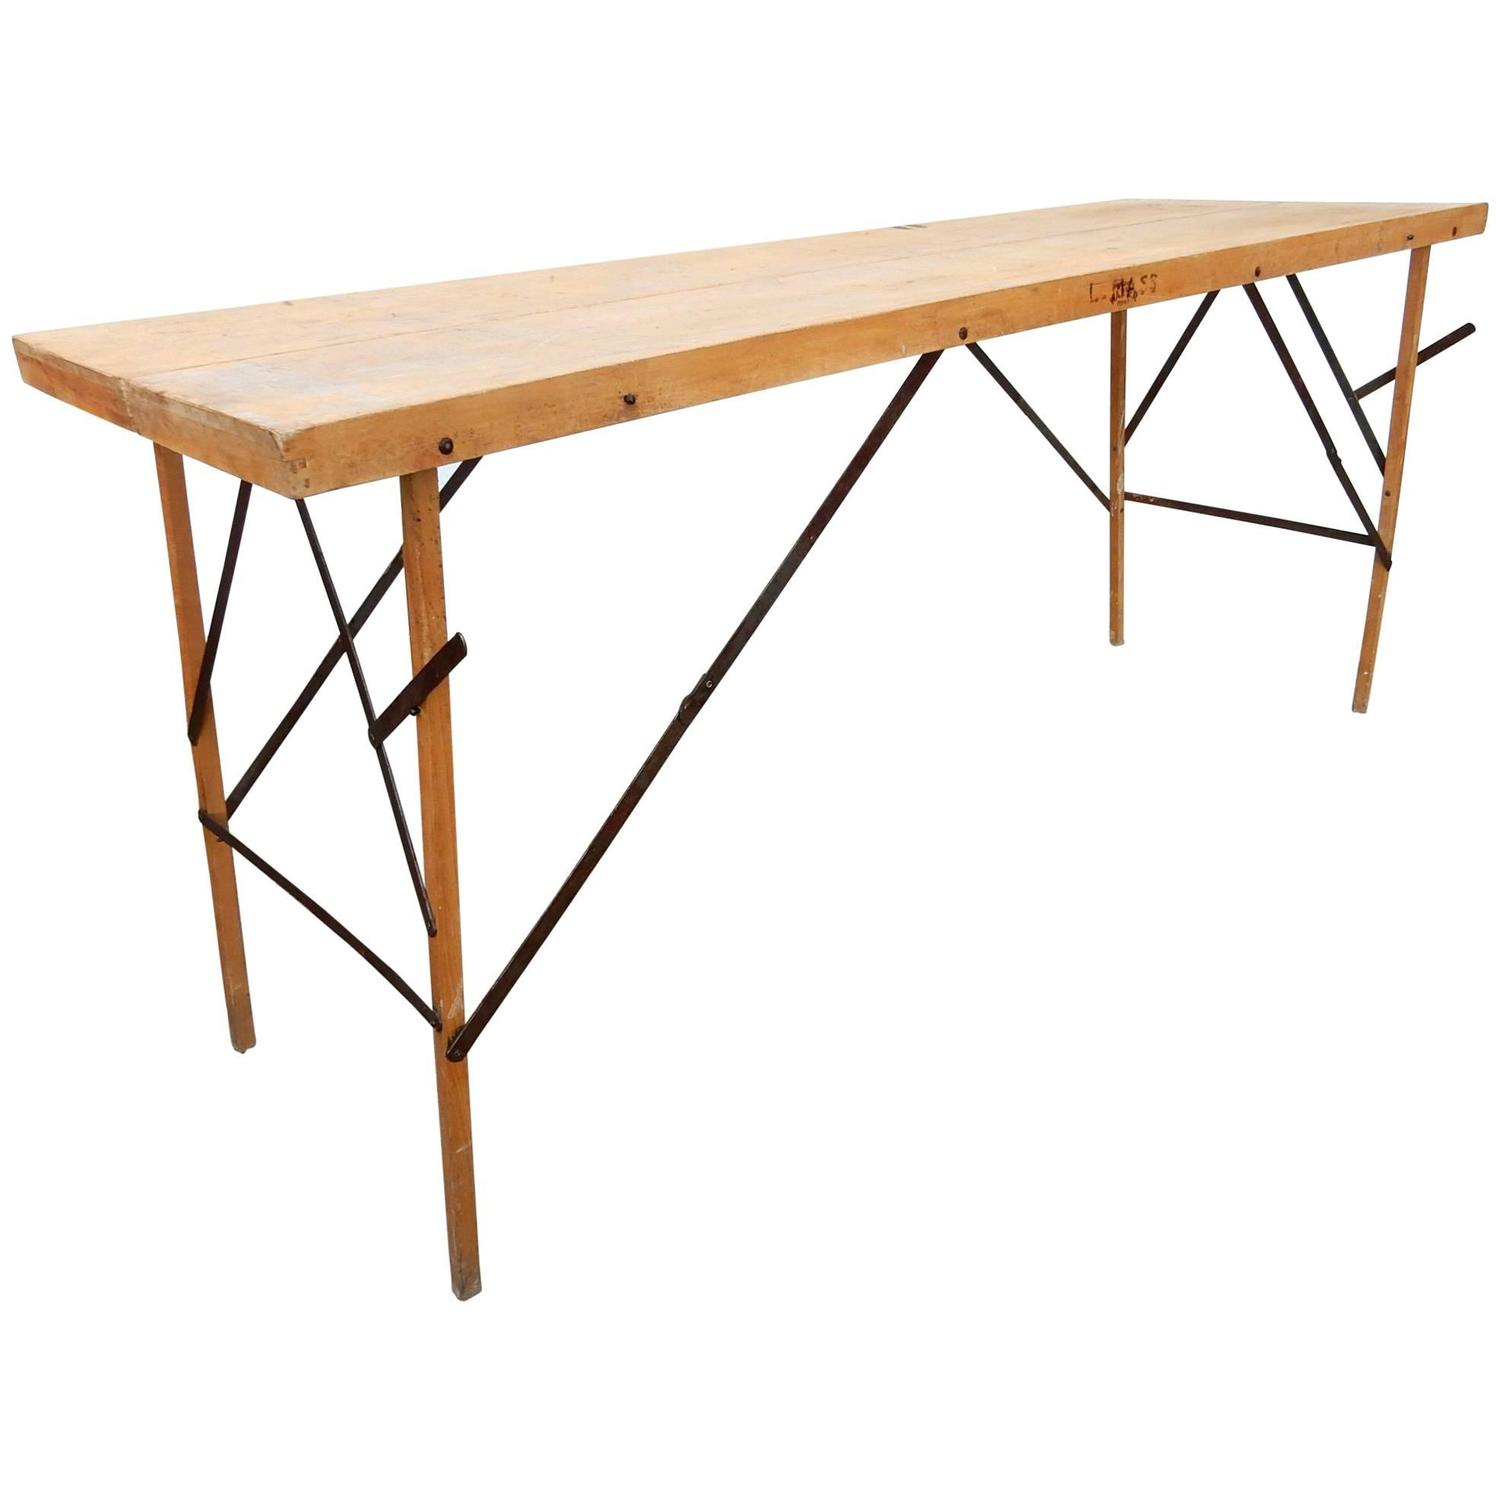 1930s Industrial Wallpaper Hangers Folding Table or Desk For Sale